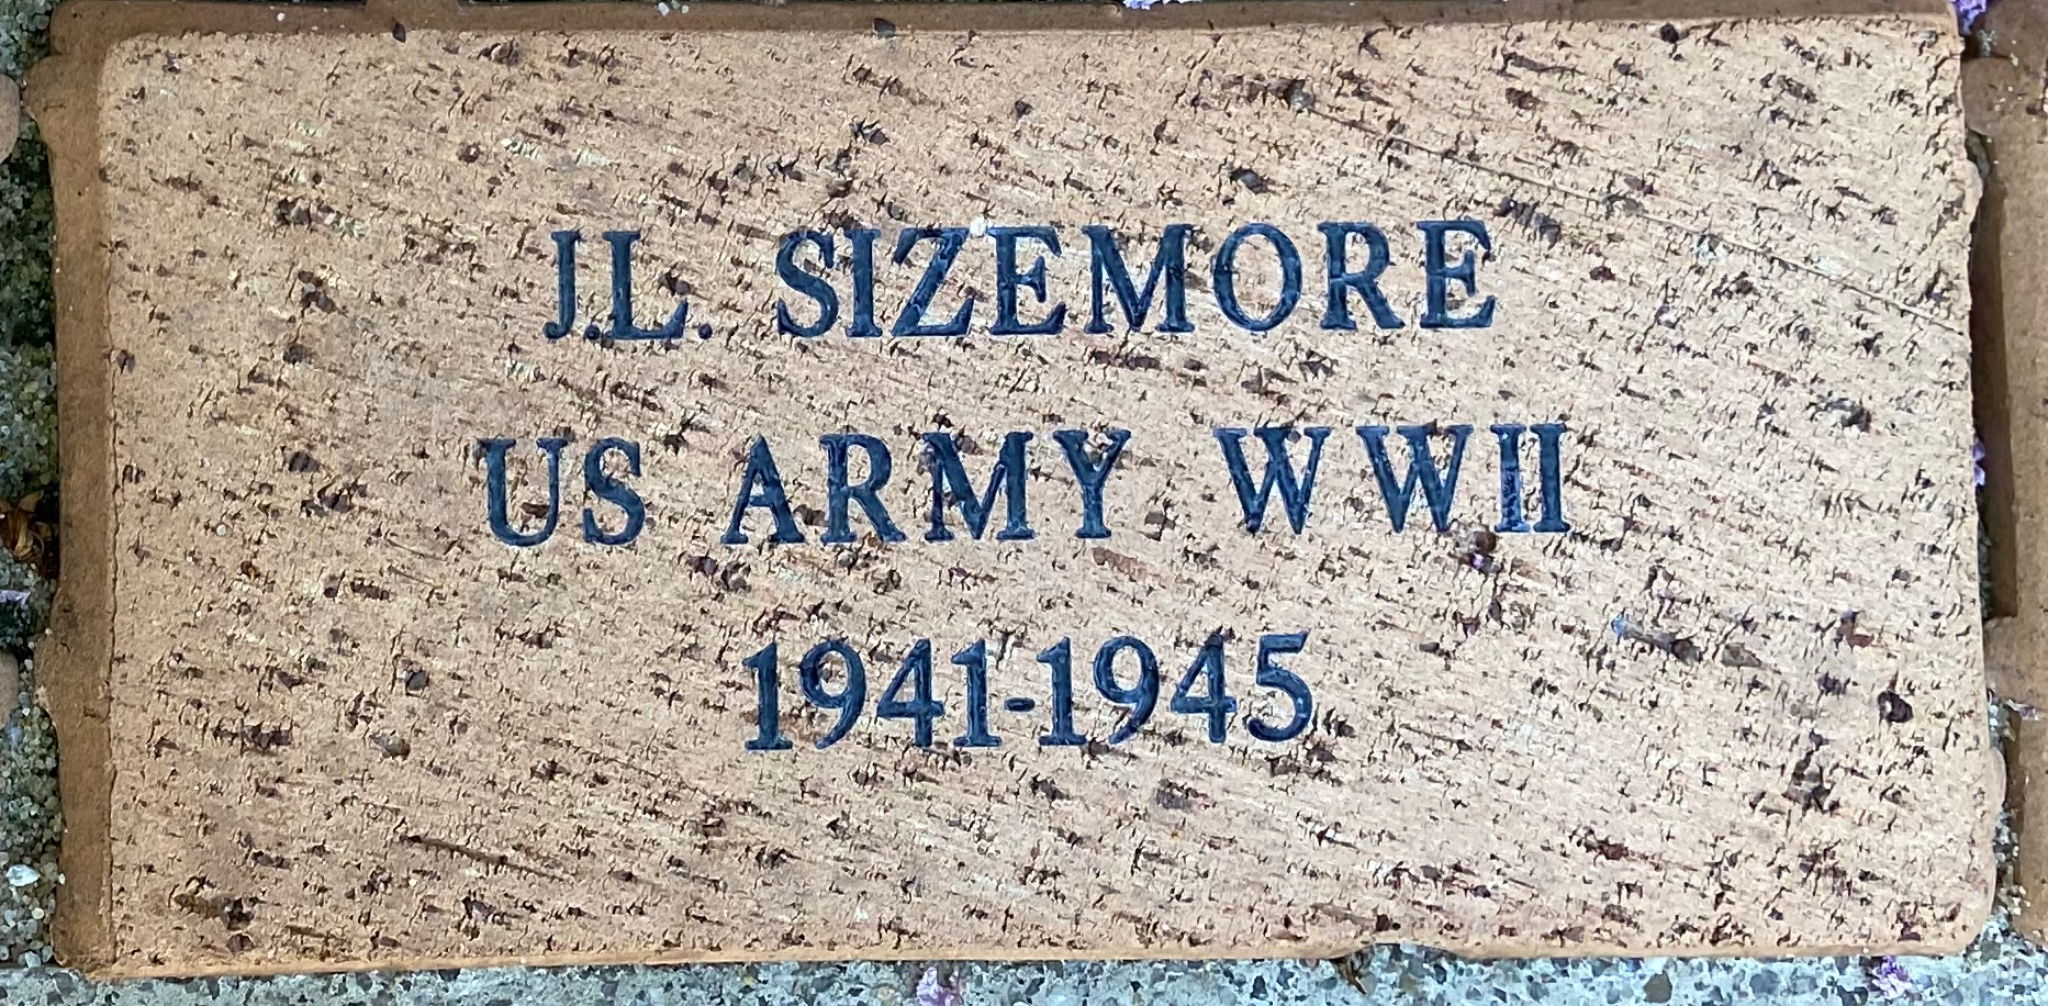 J.L. SIZEMORE US ARMY WWII 1941-1945